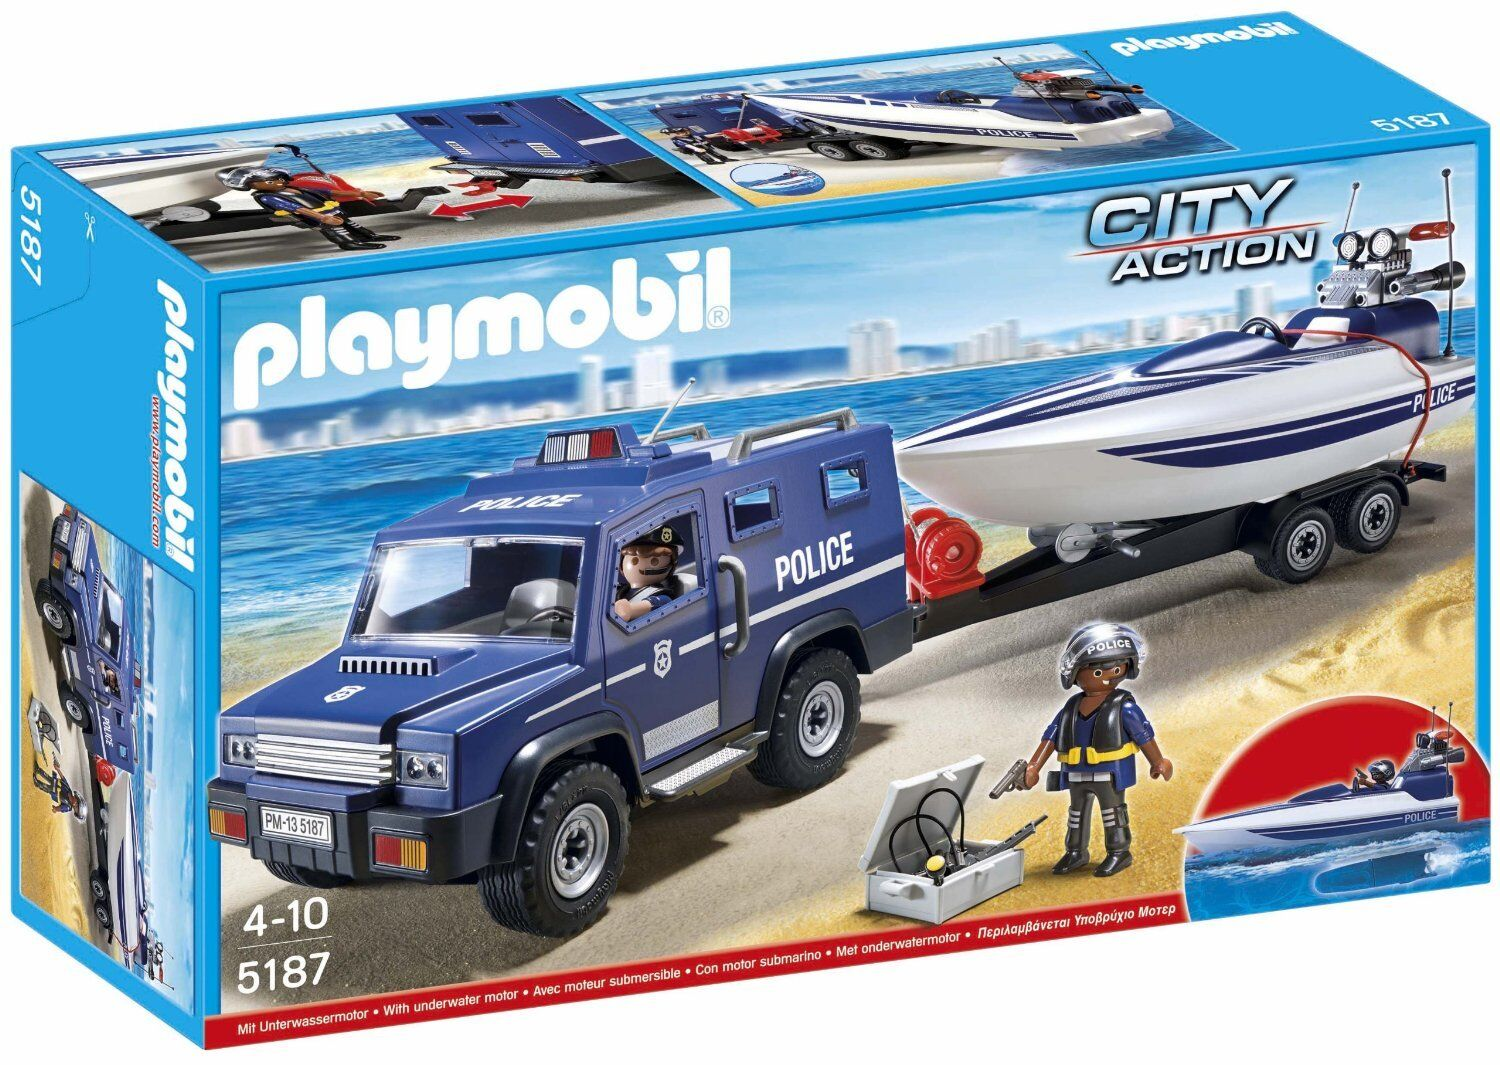 Playmobil City Action 5187 Coche de Policía con Lancha - New and sealed